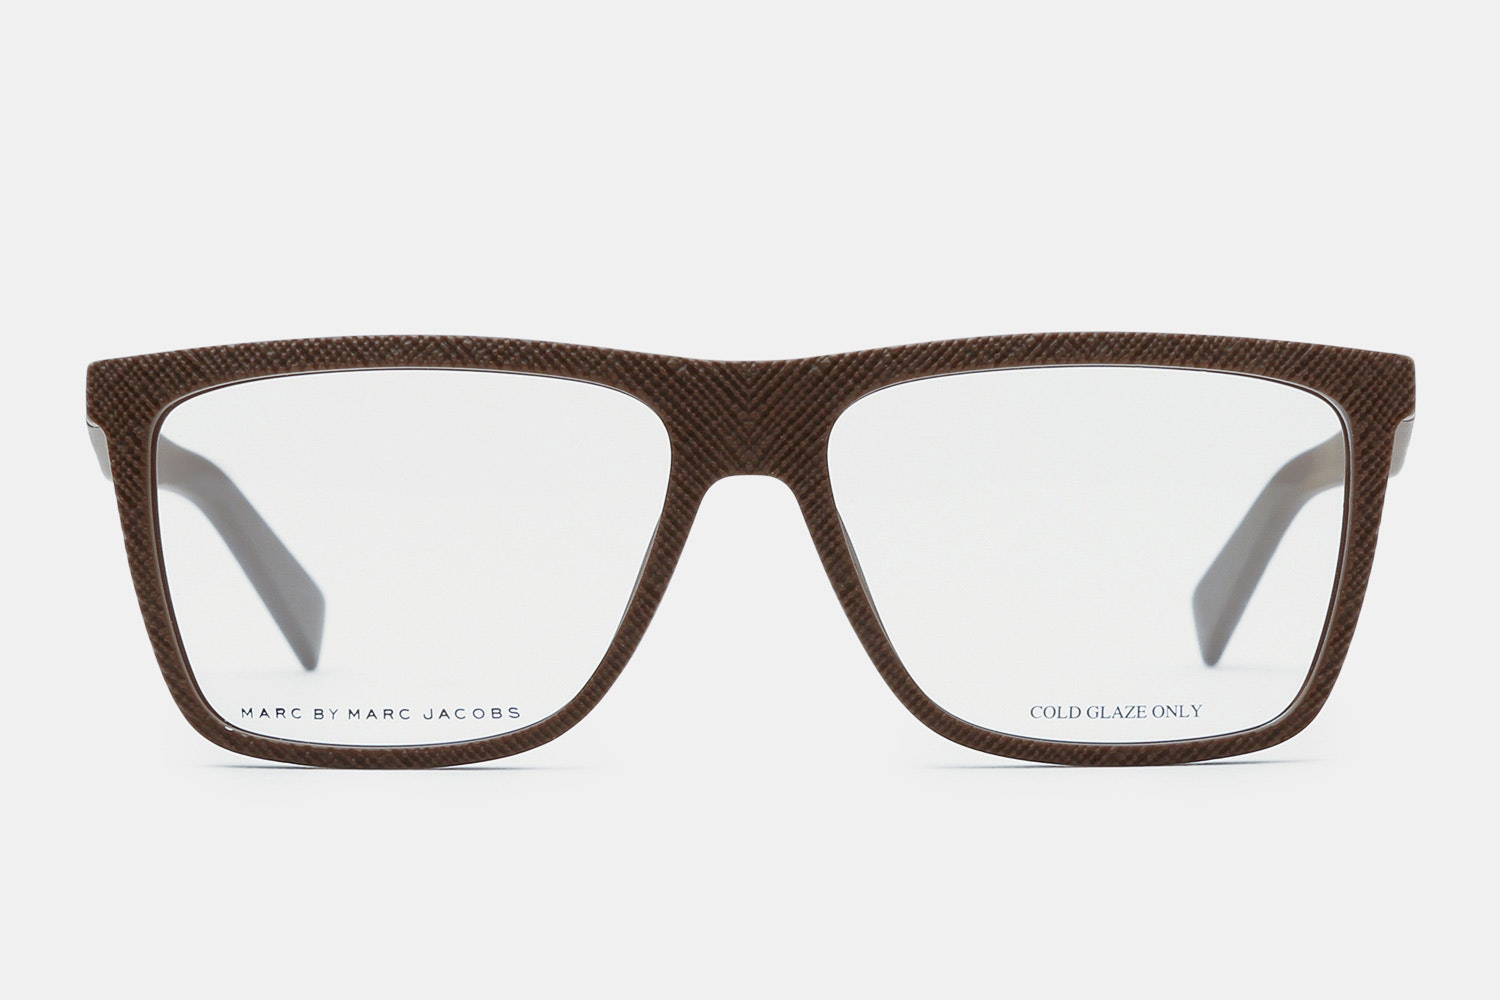 Mmj 649 Lnn/15 -55 - Brown